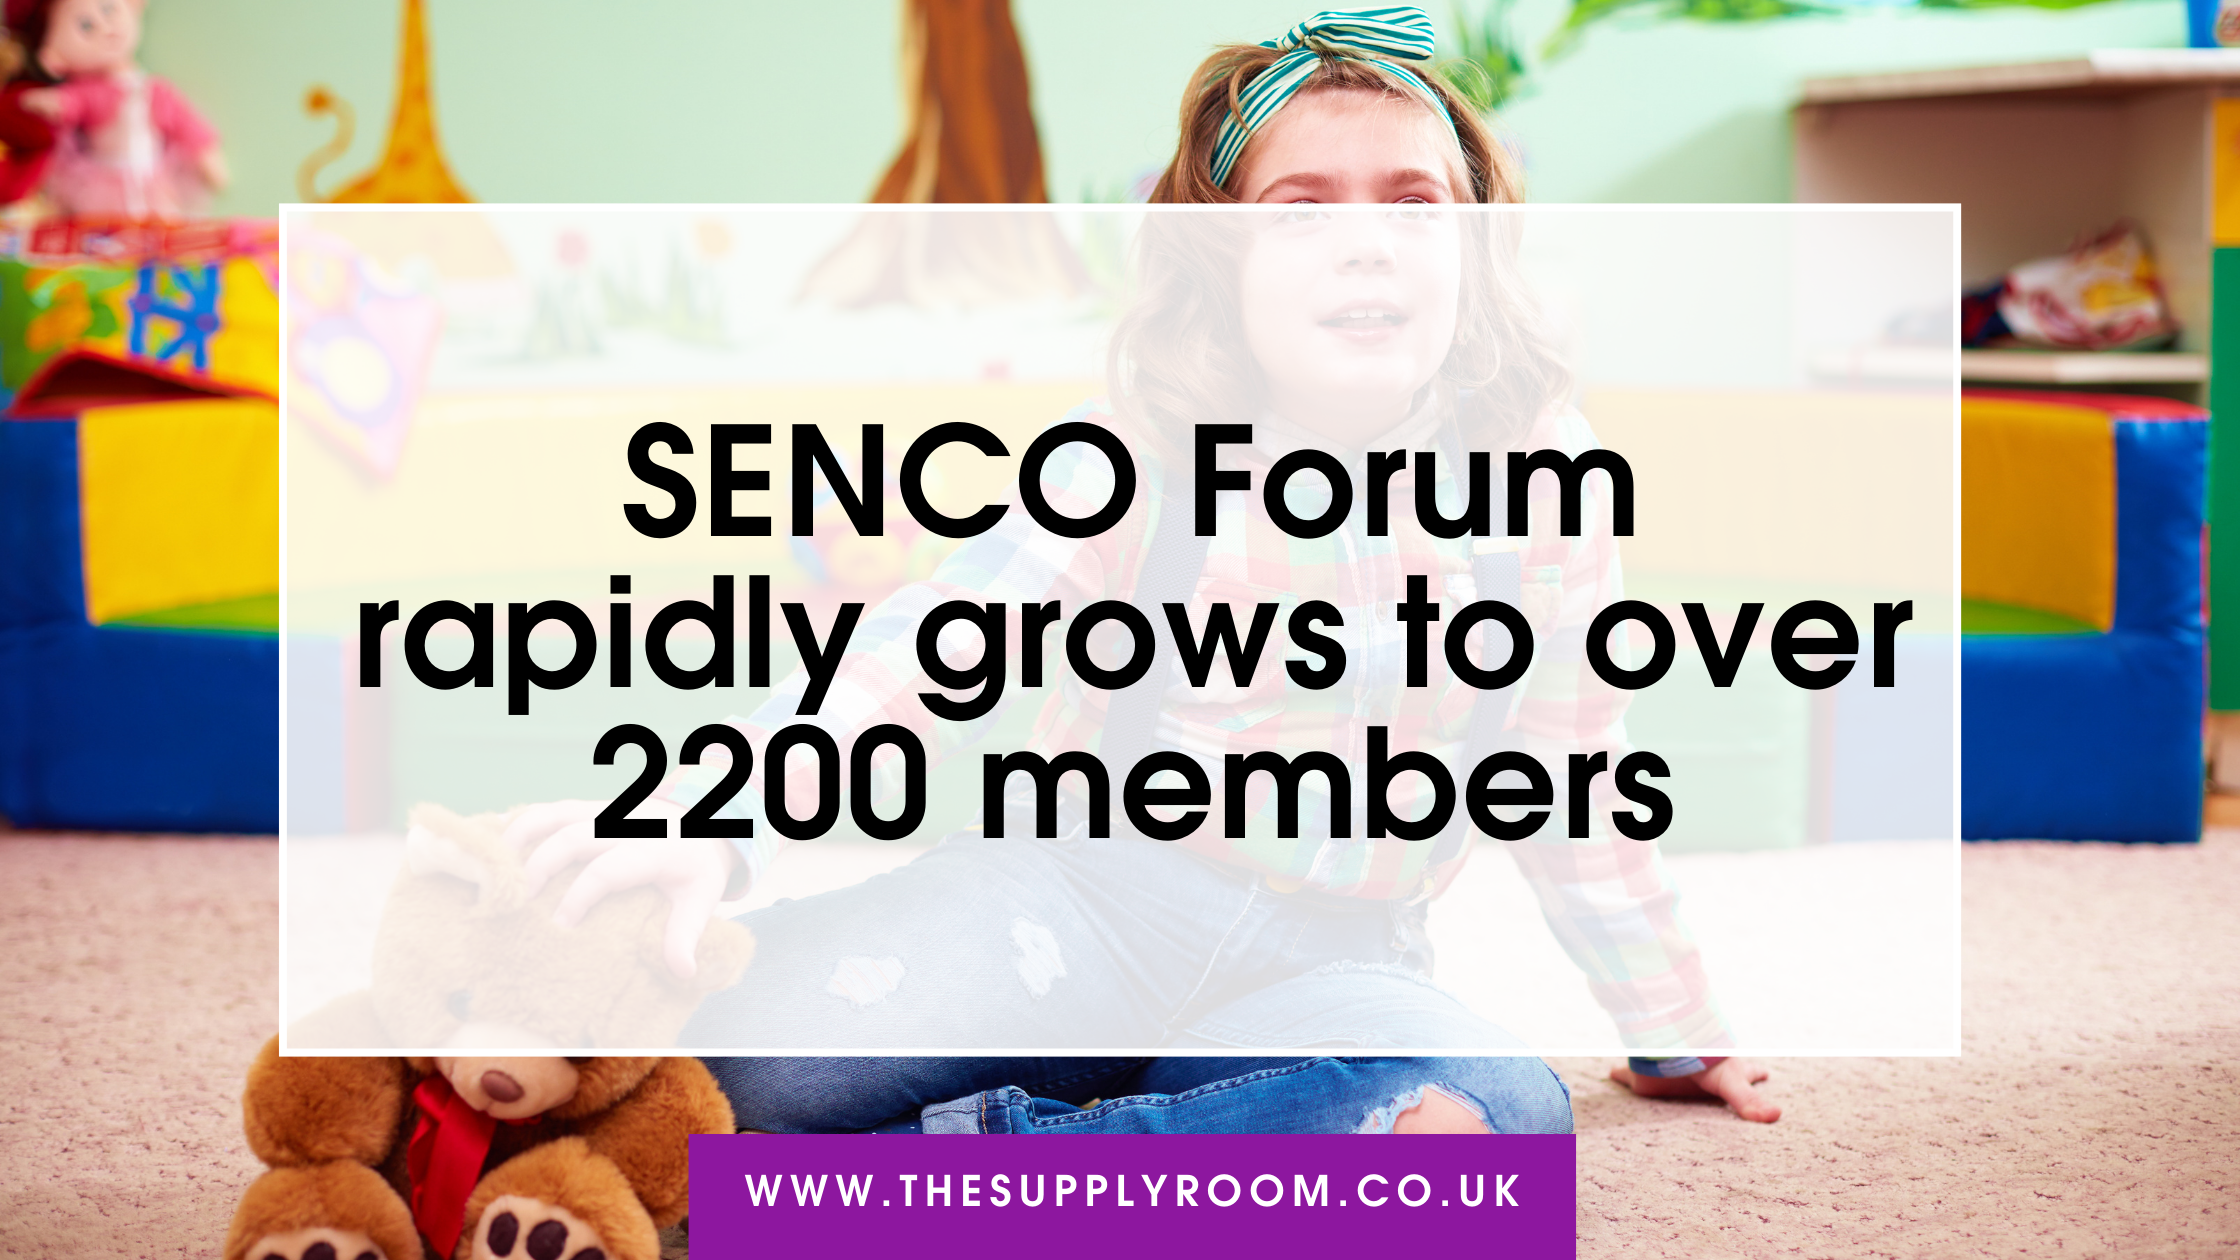 SENCO Forum rapidly grows to over 2200 members